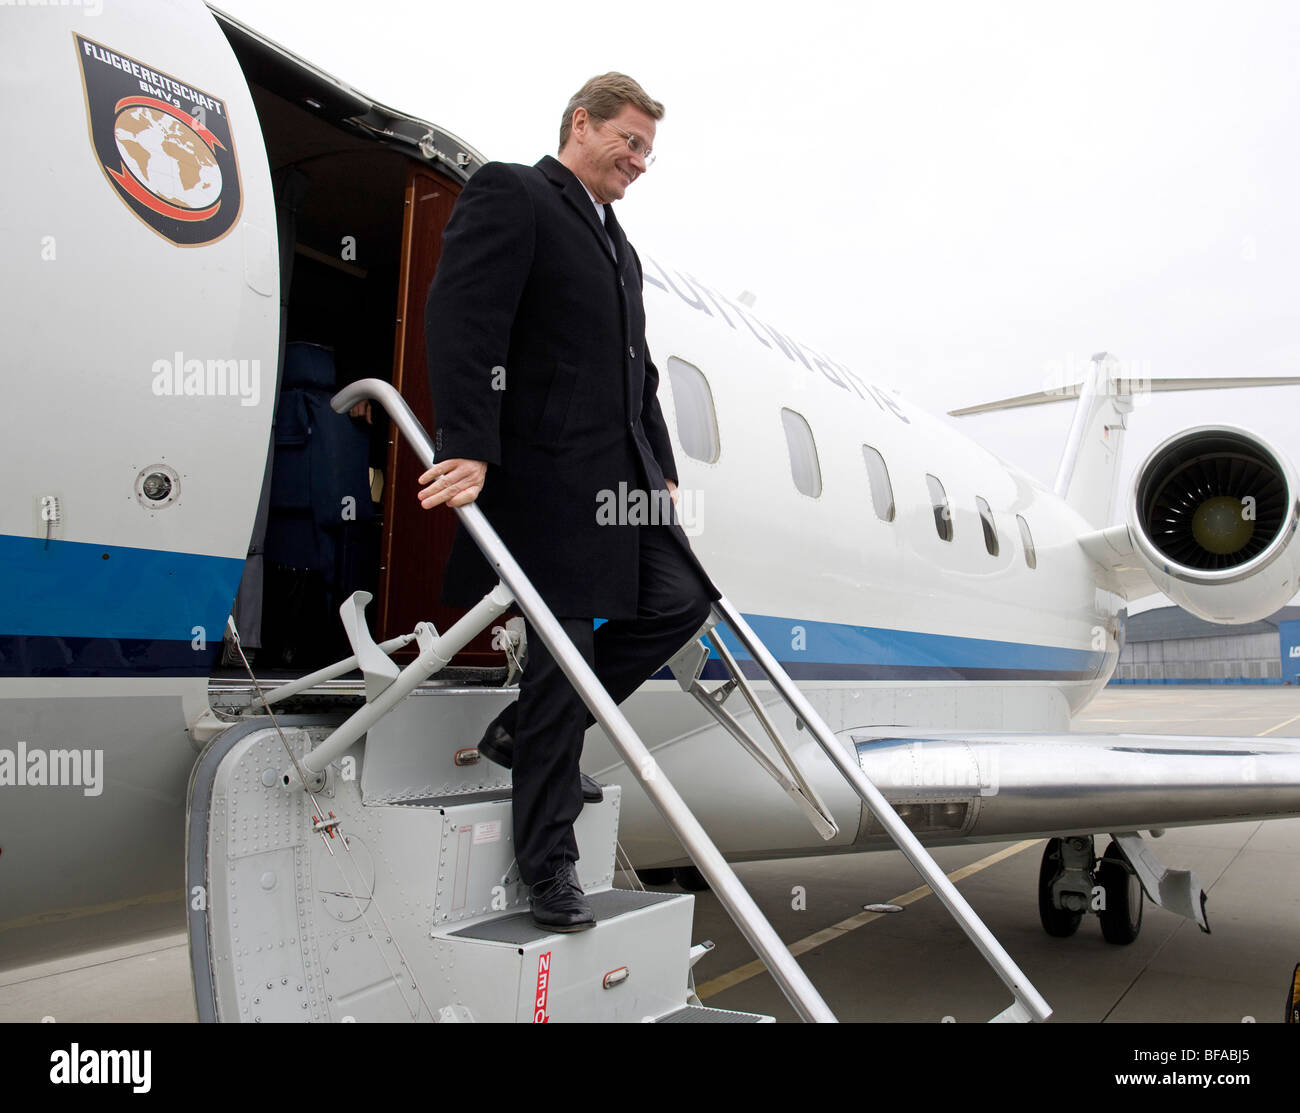 Guido WESTERWELLE, Federal Minister for Foreign Affairs, Deputy Federal Chancellor of Germany is visiting Poland, - Stock Image